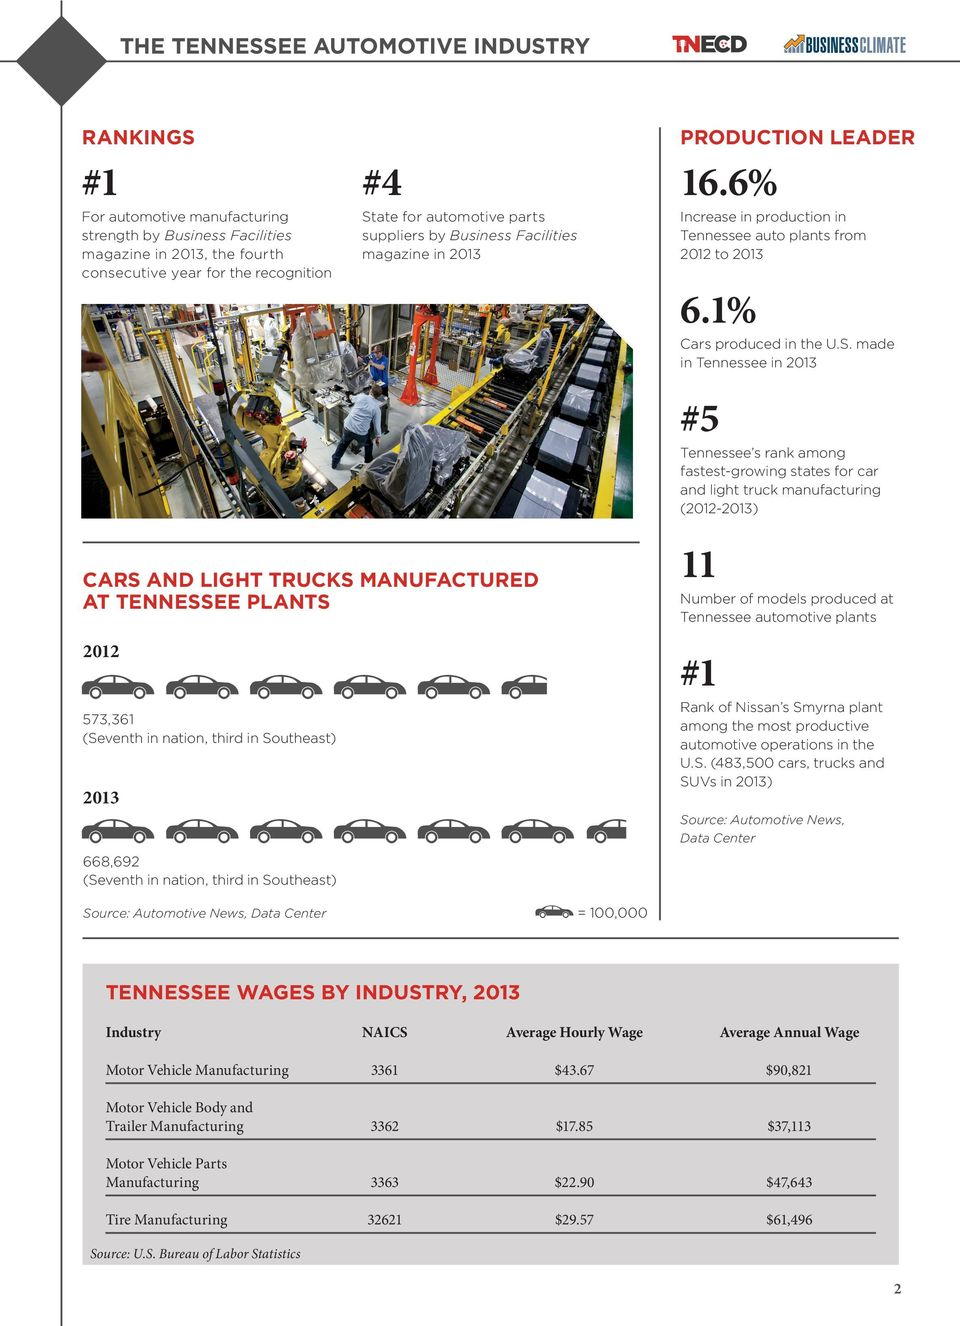 LEADER 16.6% Increase in production in Tennessee auto plants from 2012 to 2013 6.1% Cars produced in the U.S.